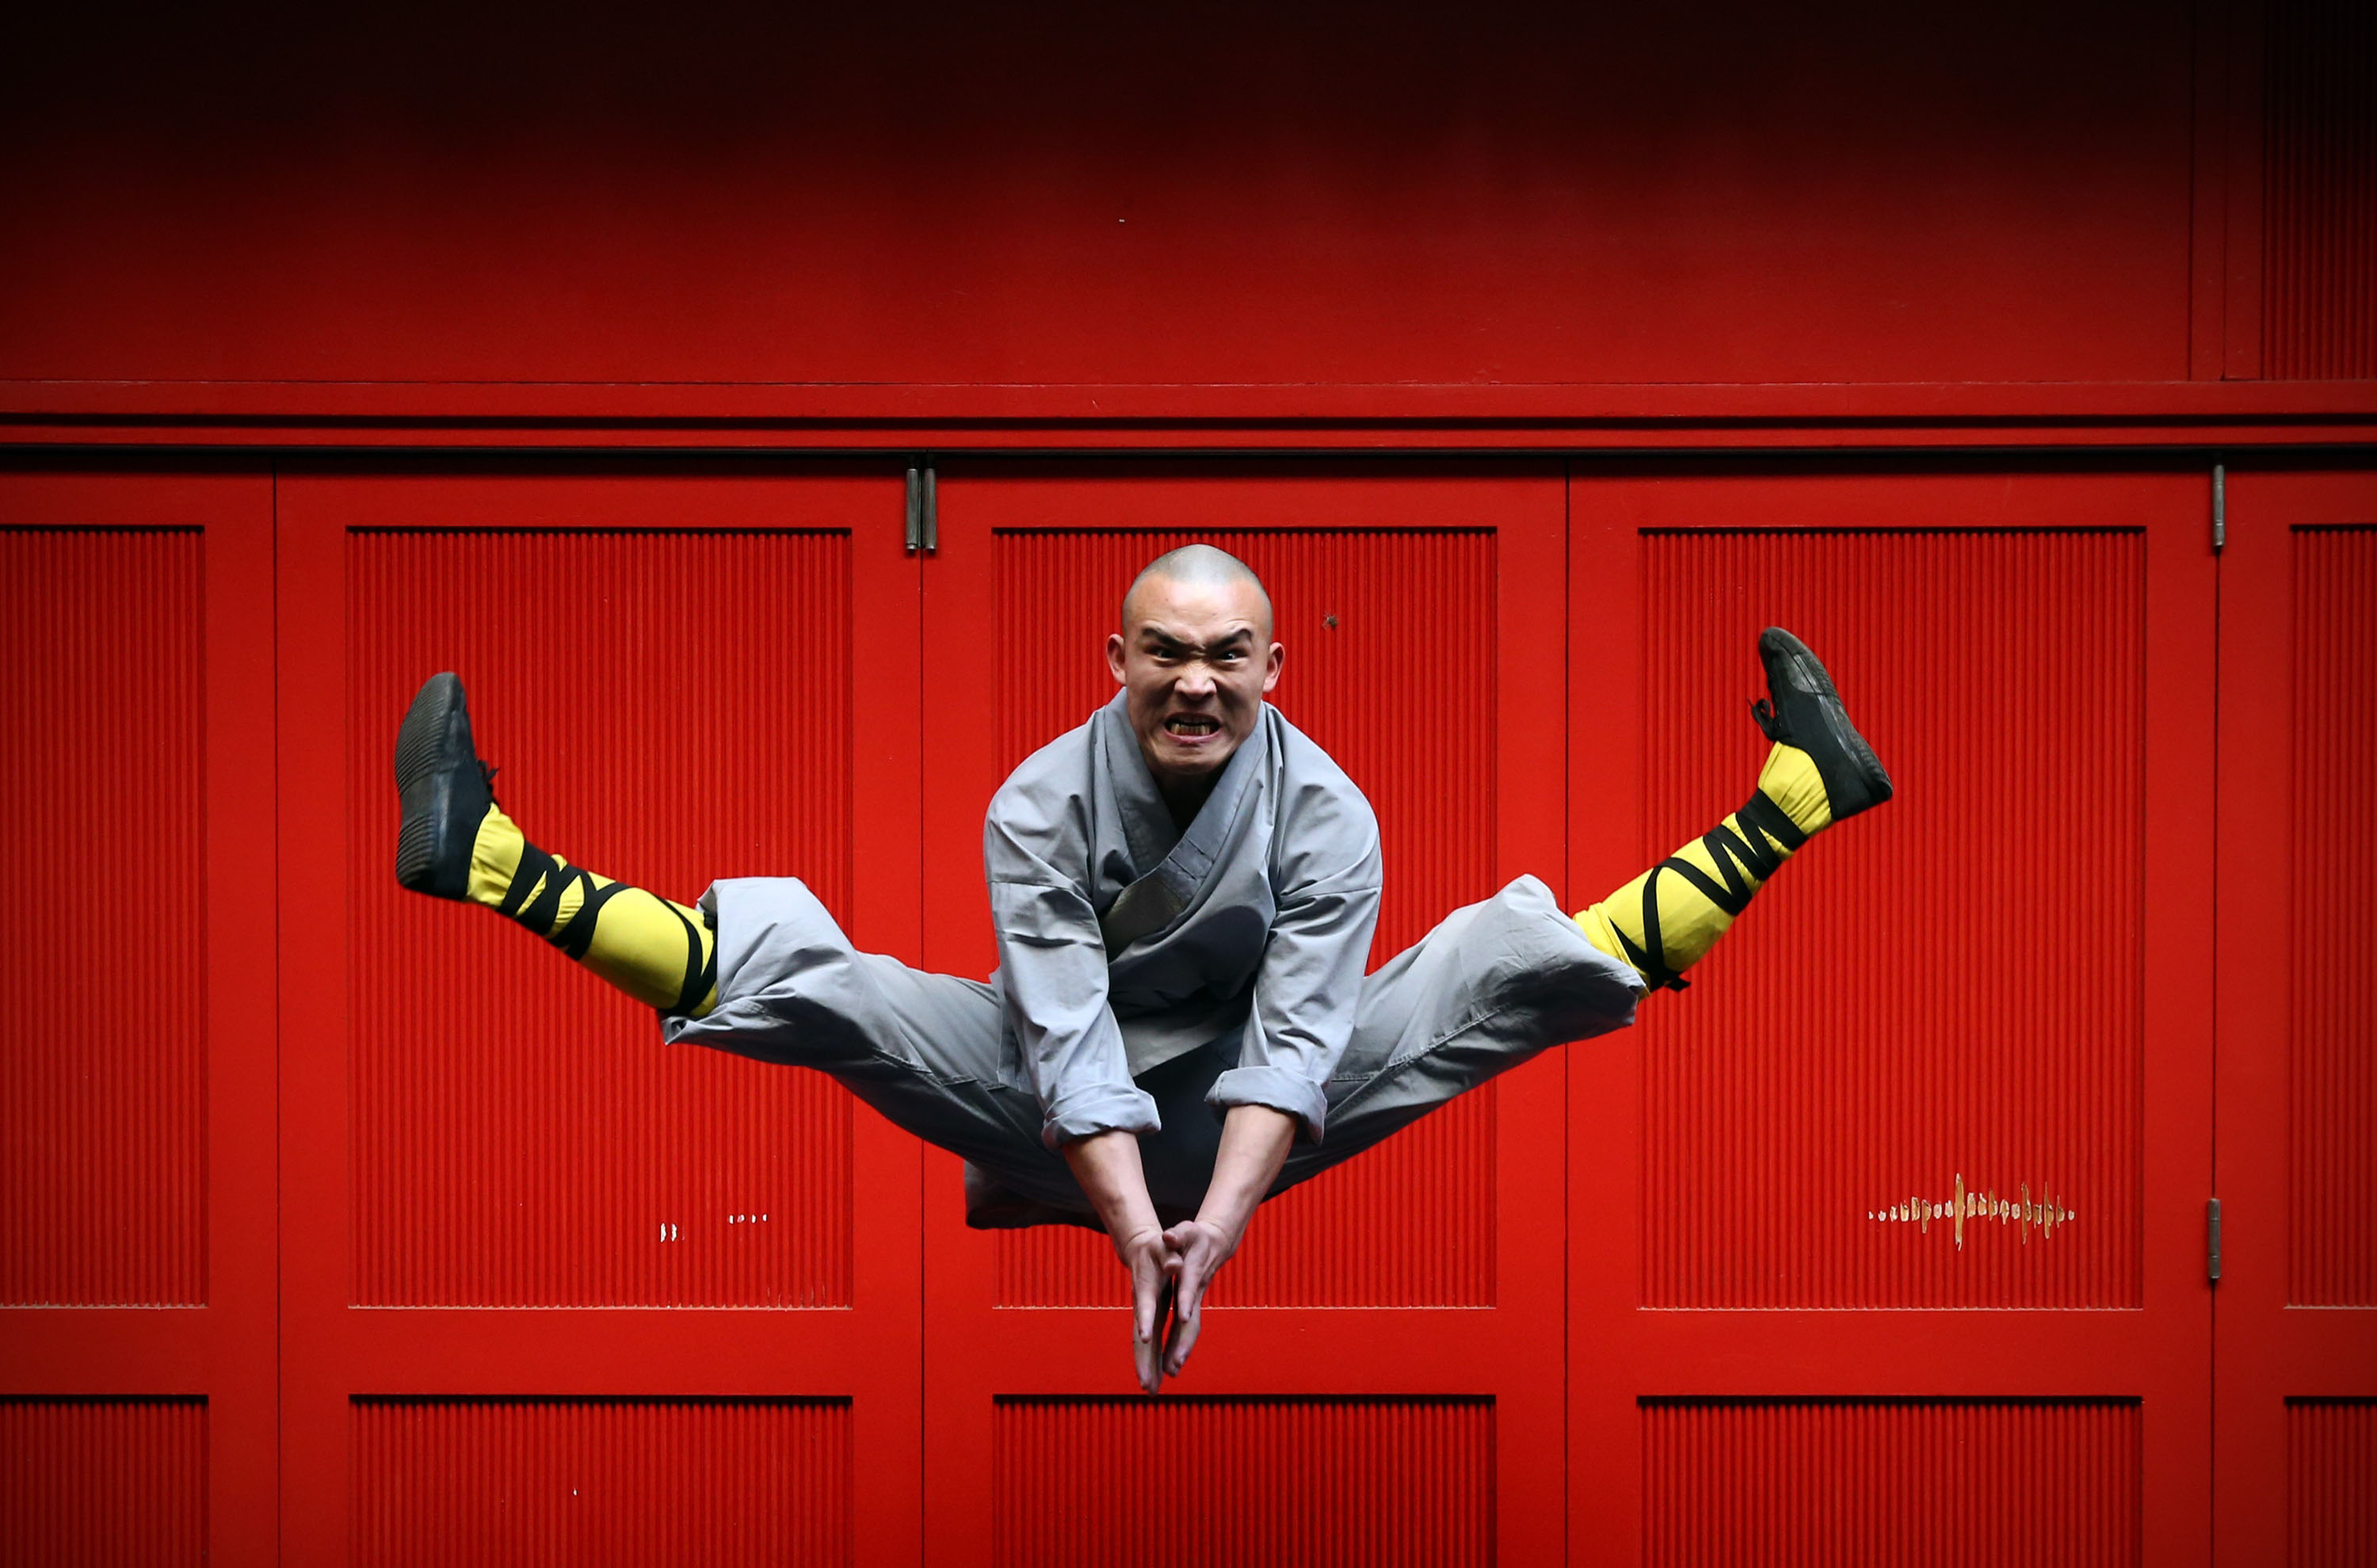 Pictures: World famous Shaolin Monks come to London's Chinatown